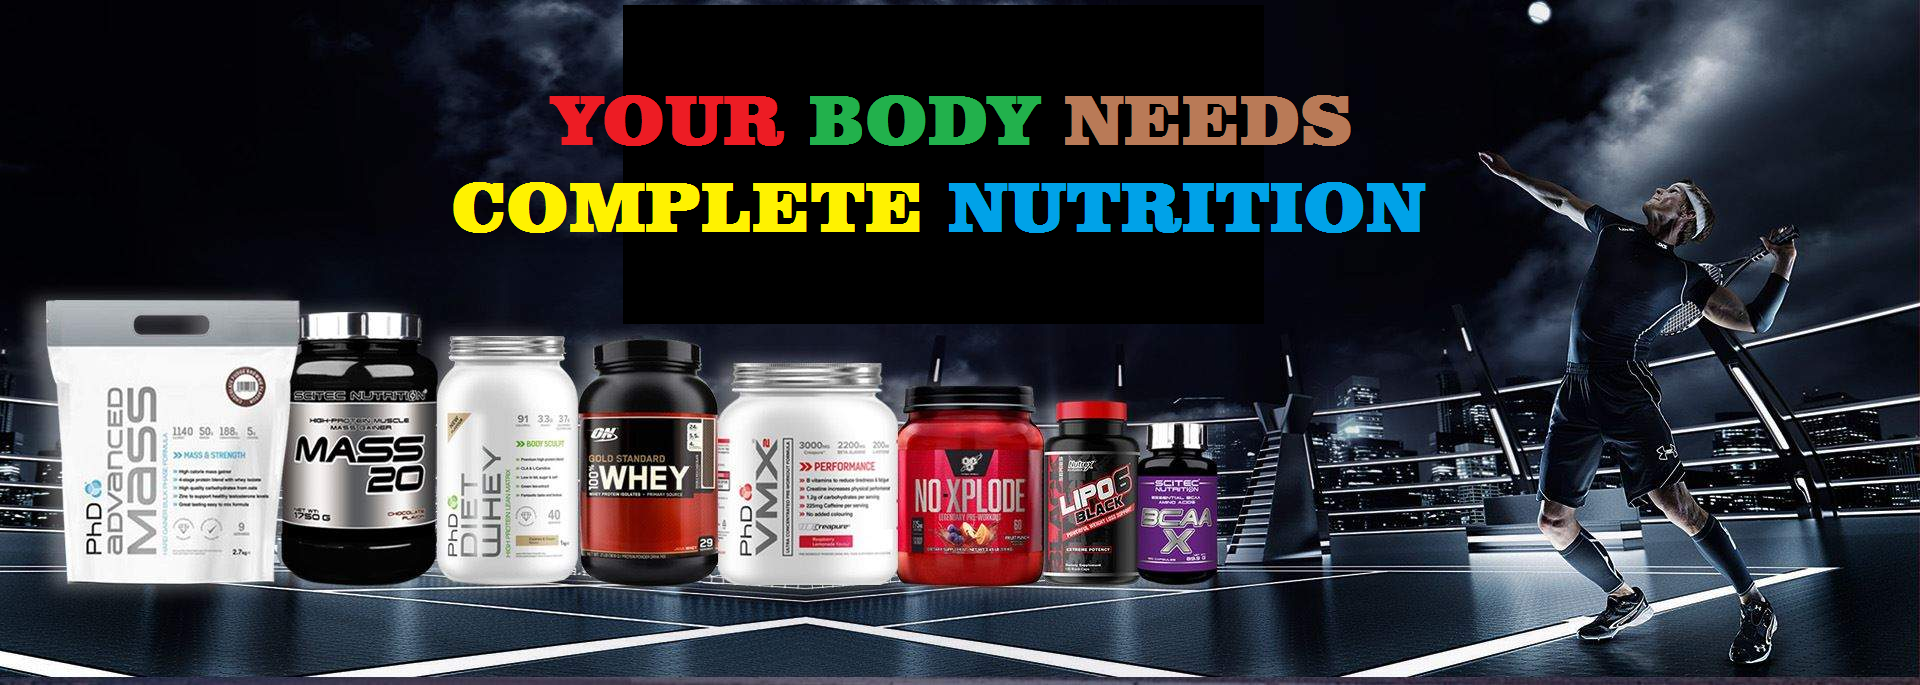 Your Body needs Complete Nutrition At www.arnutrition.pk